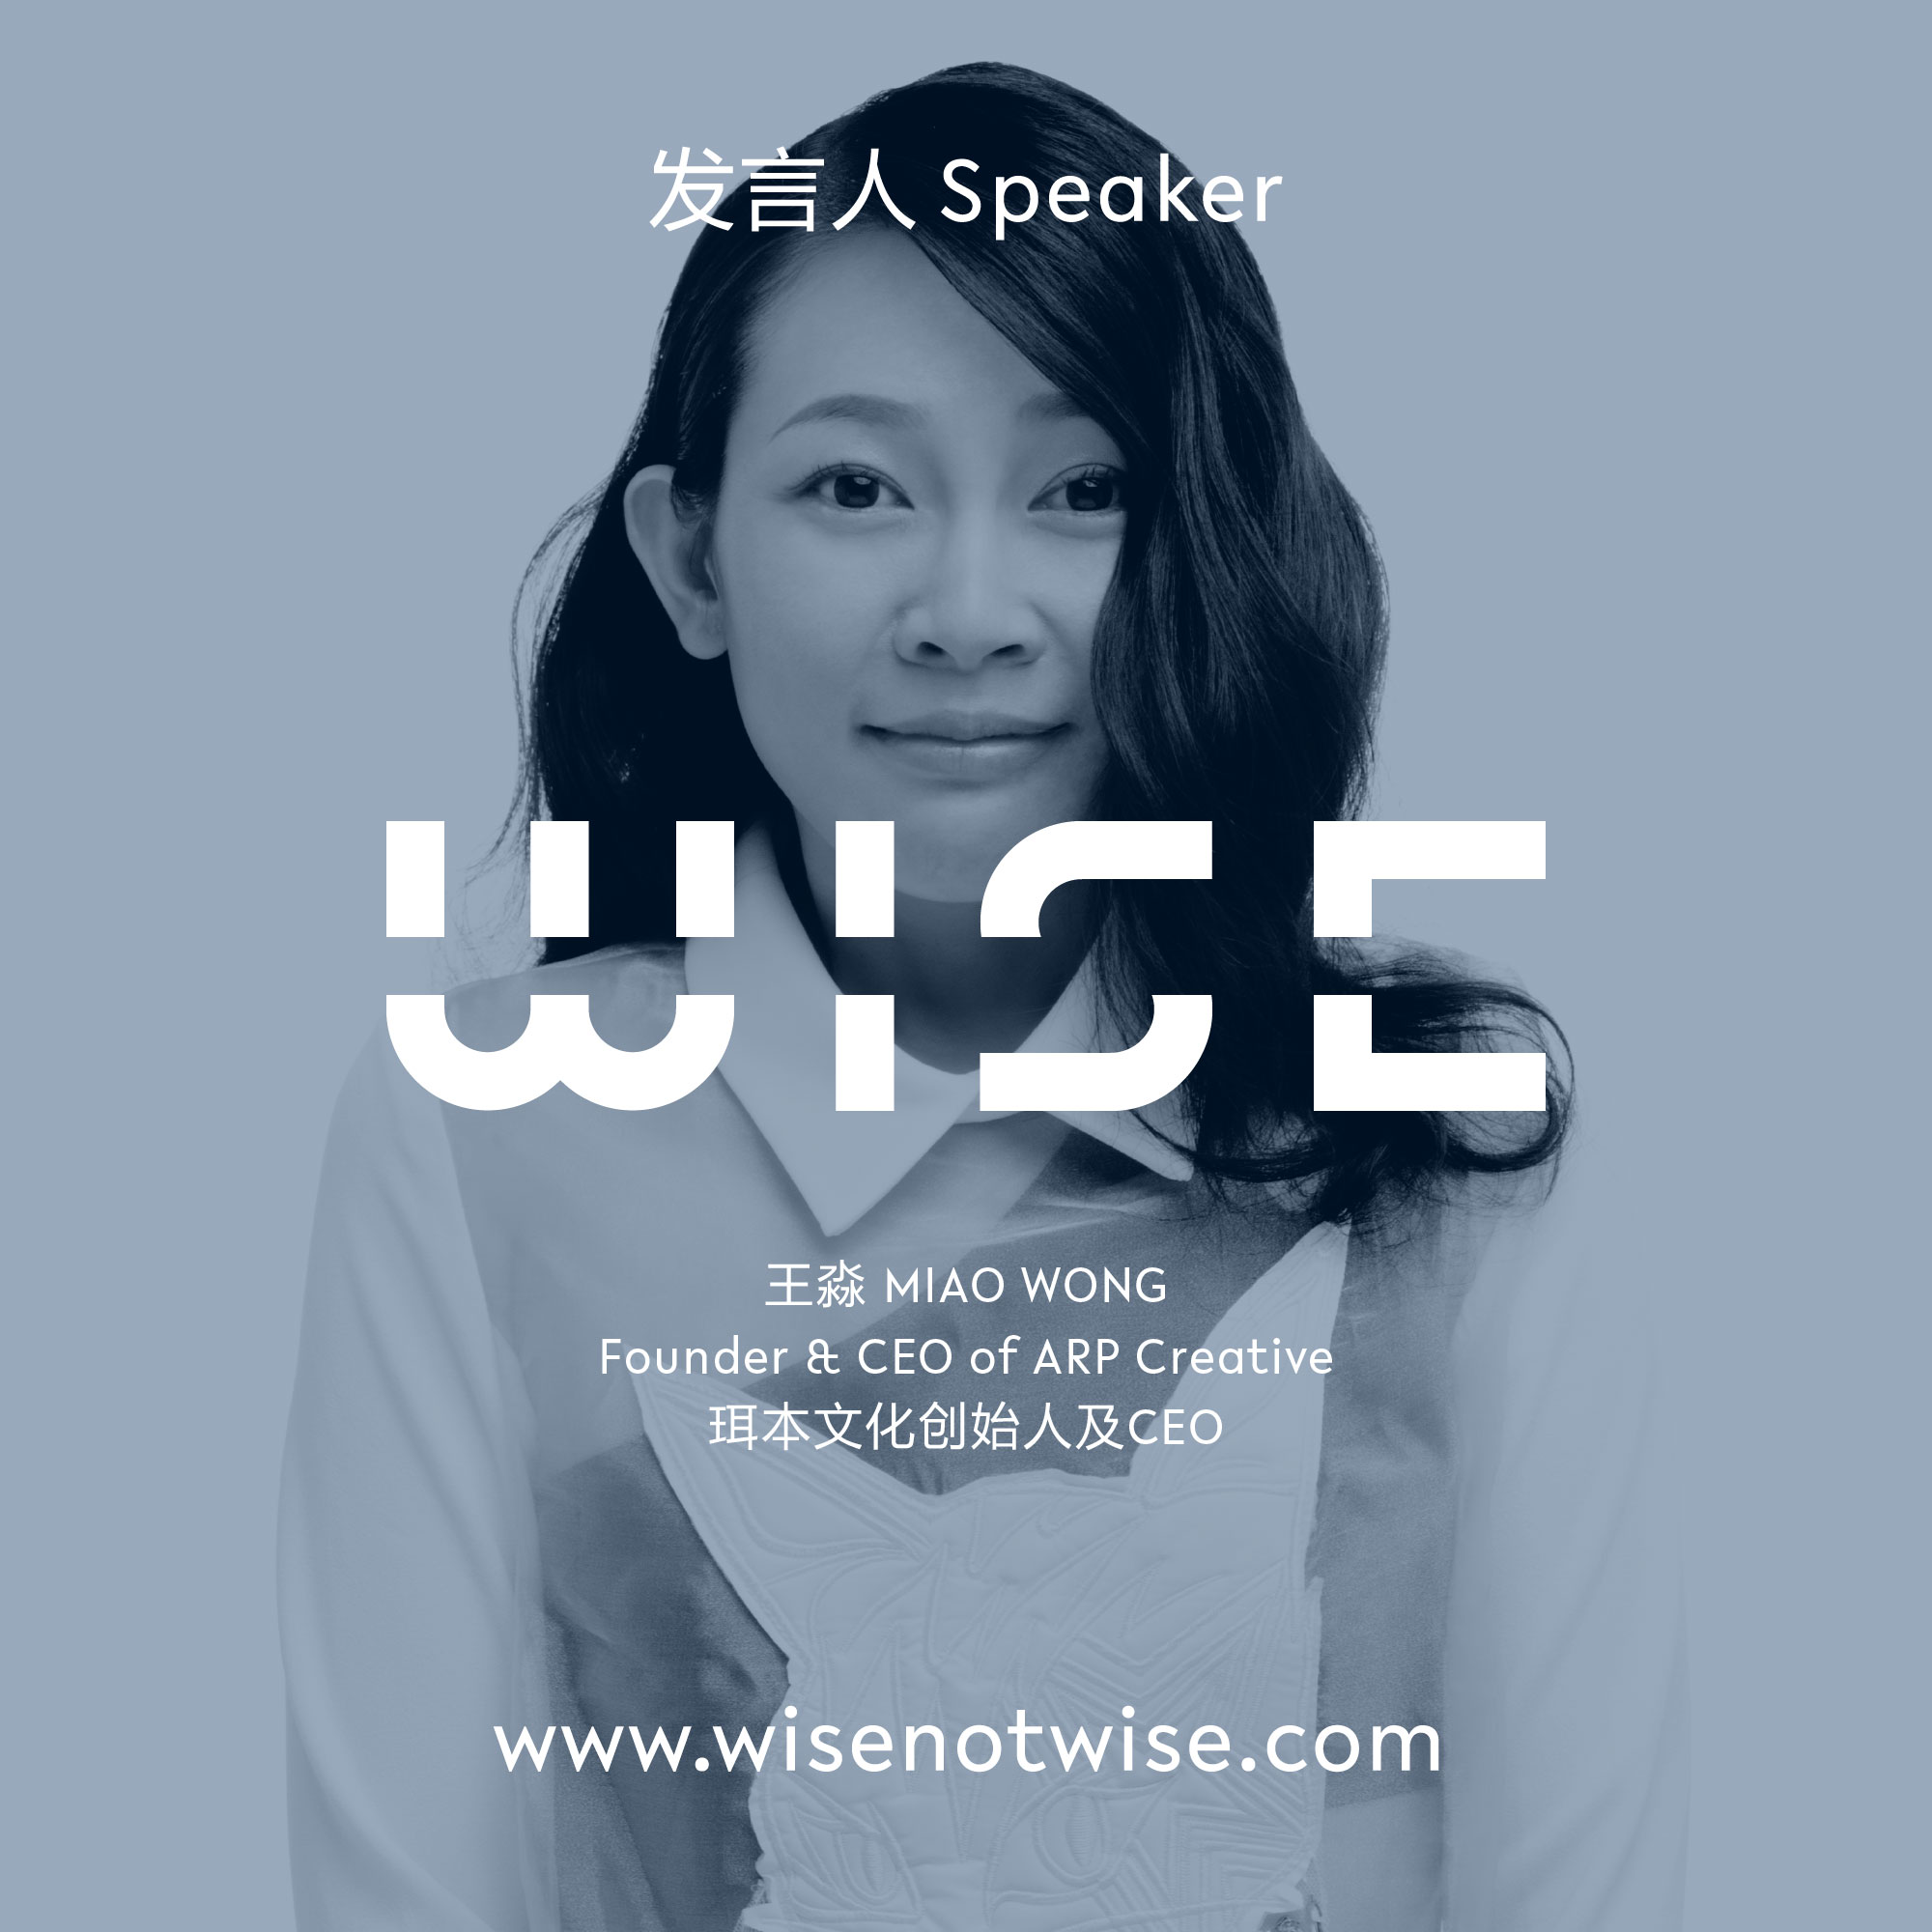 Miao Wong (Founder and CEO of ARP Creative)